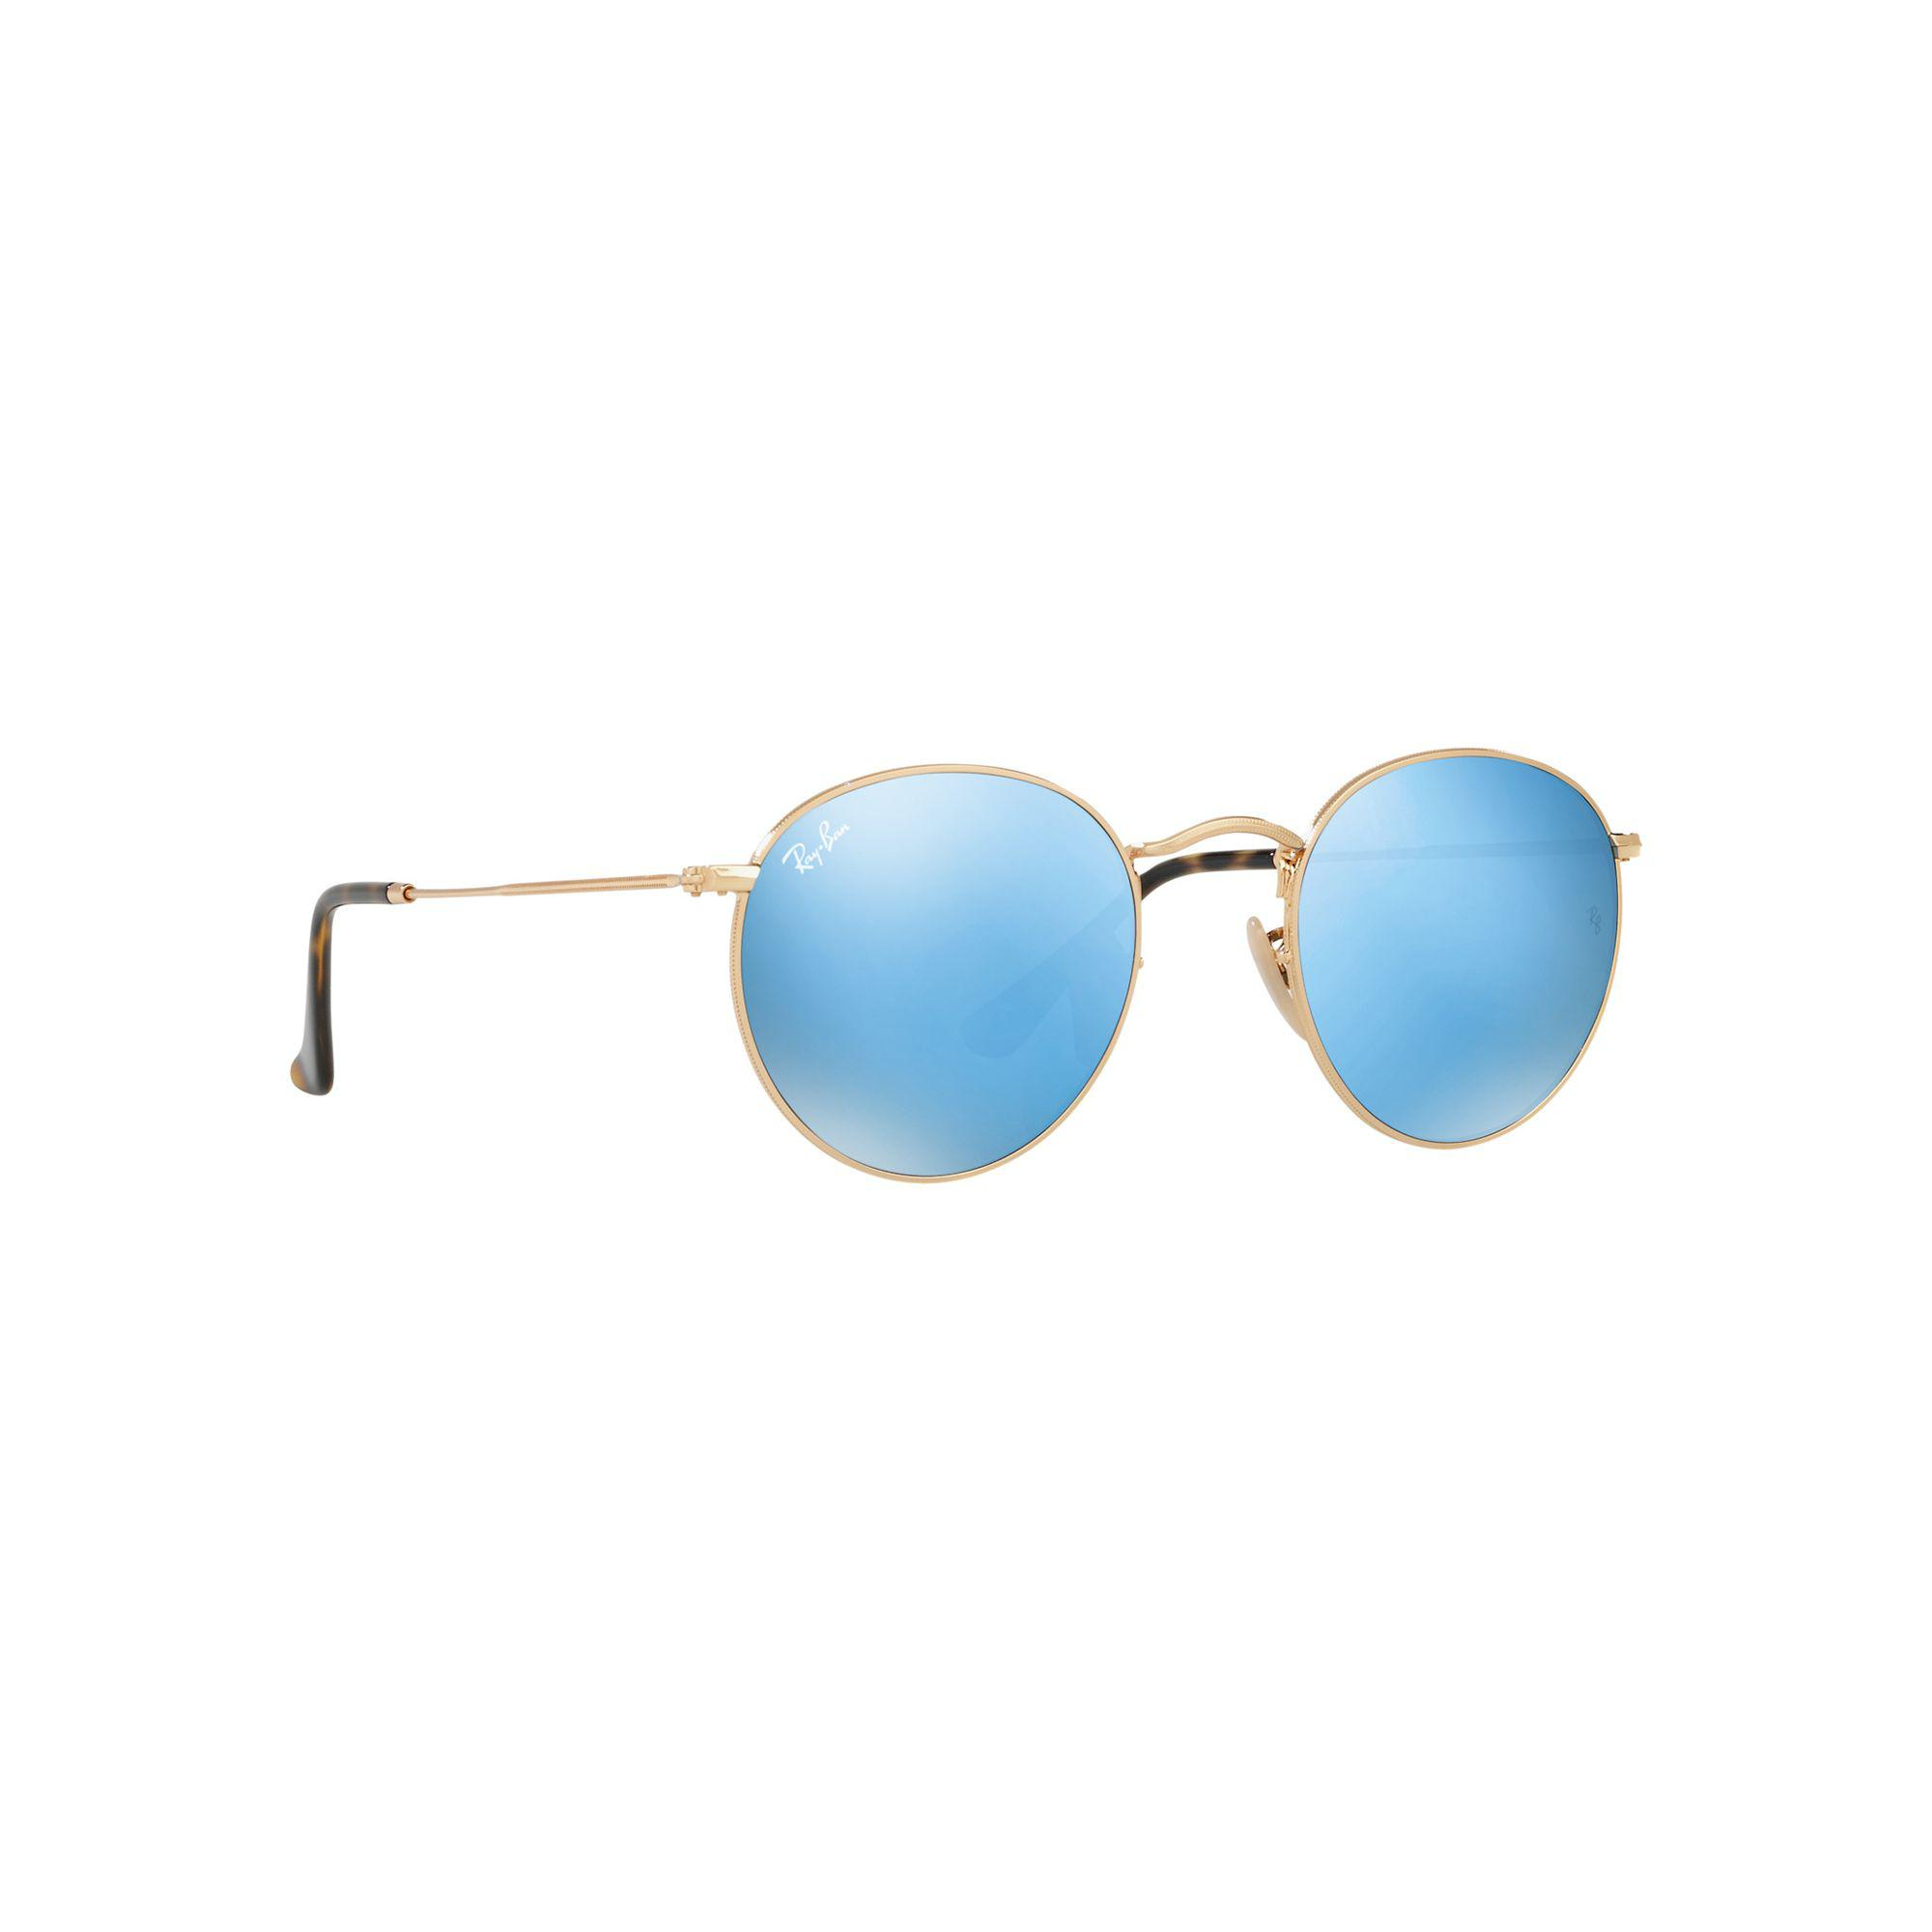 5002b7bda6 Lyst - Ray-Ban Shiny Gold  round  Rb3447n Sunglasses in Metallic for Men